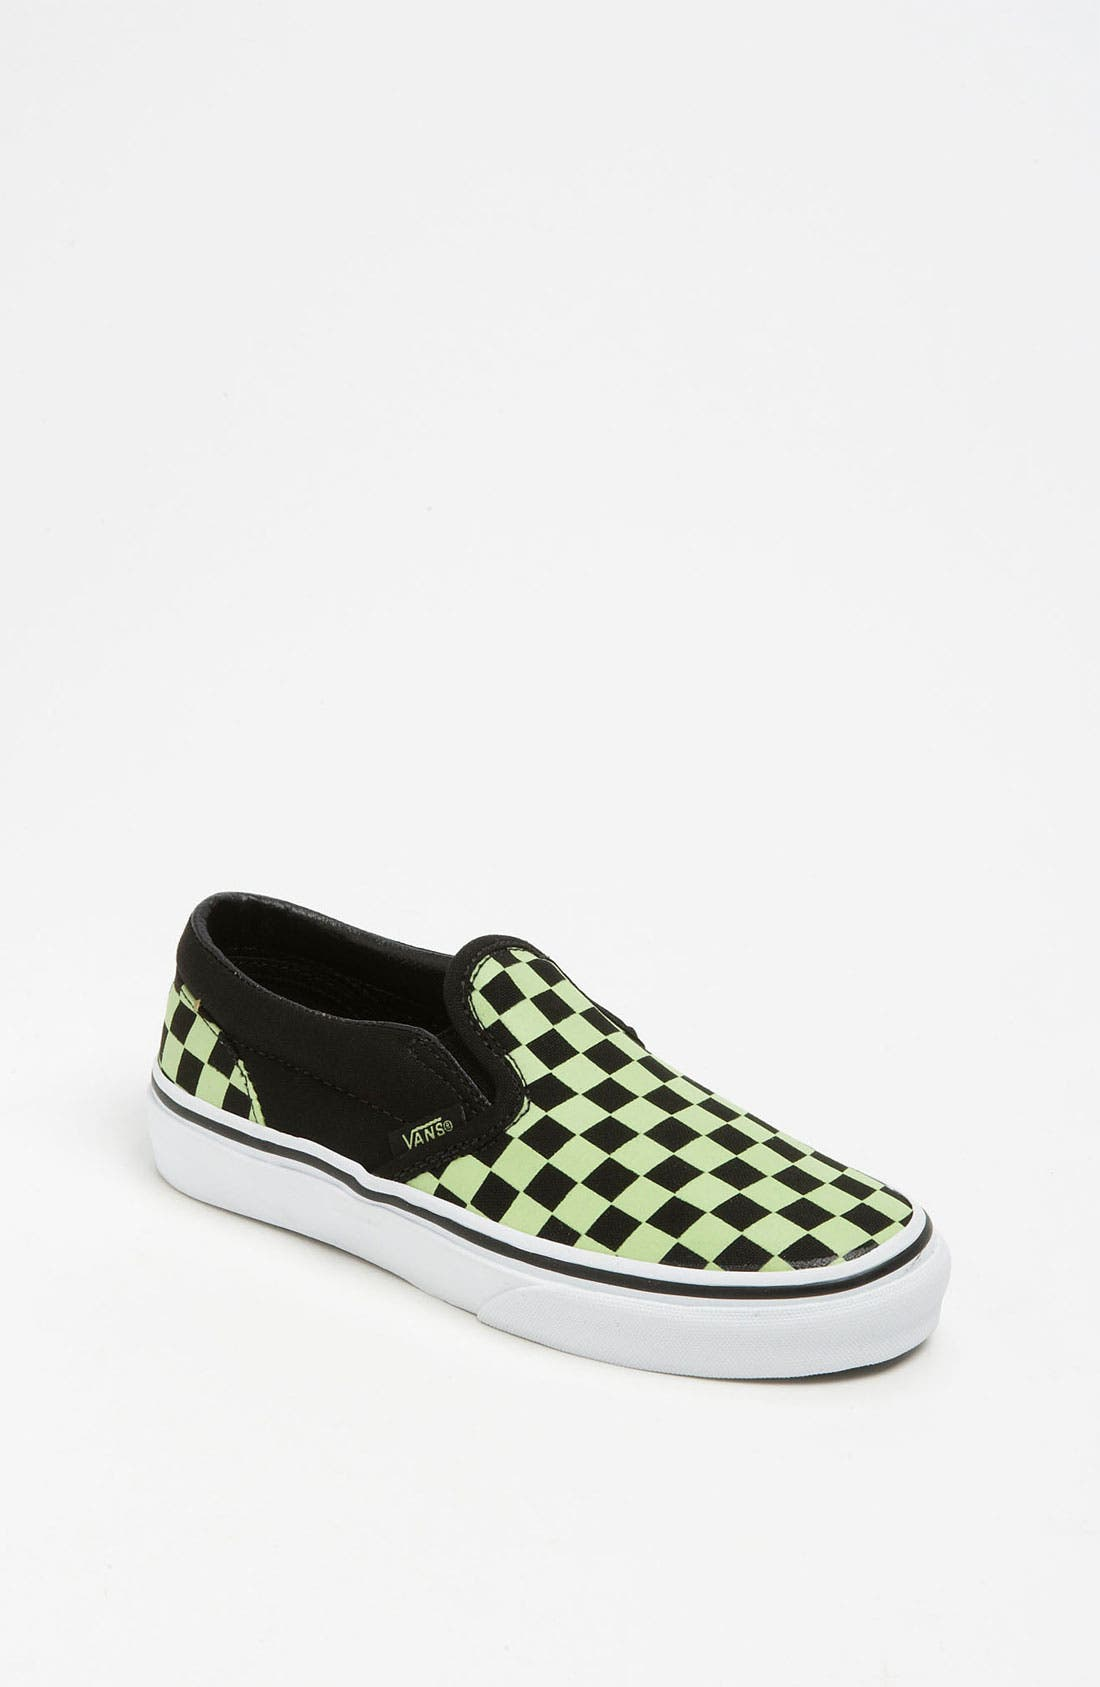 Alternate Image 1 Selected - Vans 'Classic Checker - Glow in the Dark' Slip-On (Toddler, Little Kid & Bid Kid)